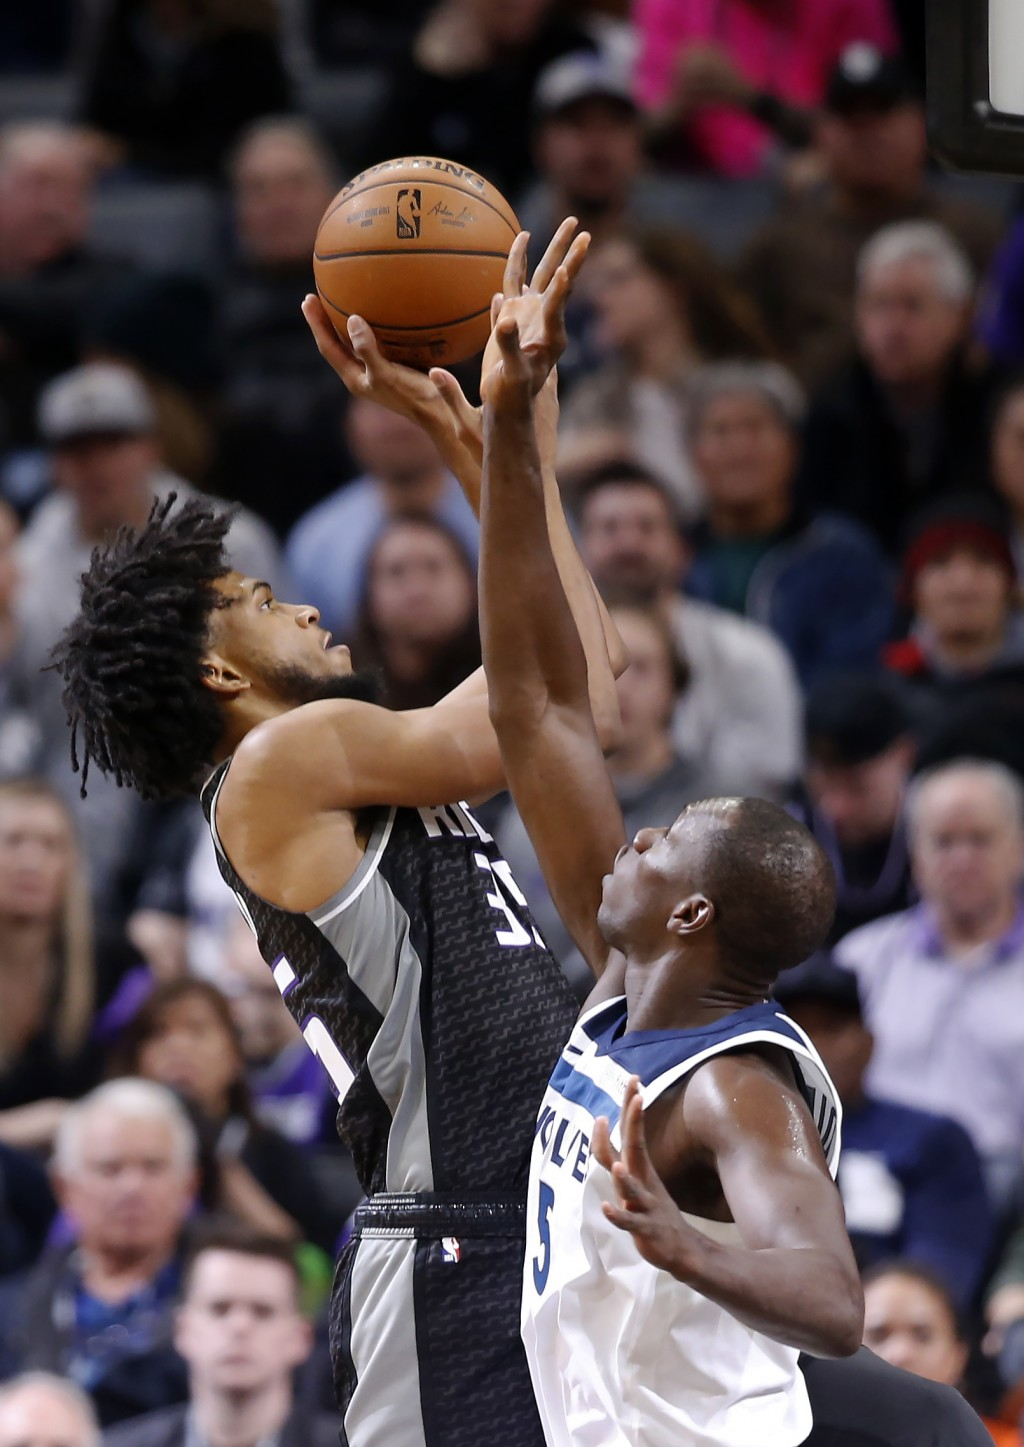 Sacramento Kings forward Marvin Bagley III, left, goes to the basket against Minnesota Timberwolves center Gorgui Dieng, right, during the first quart...